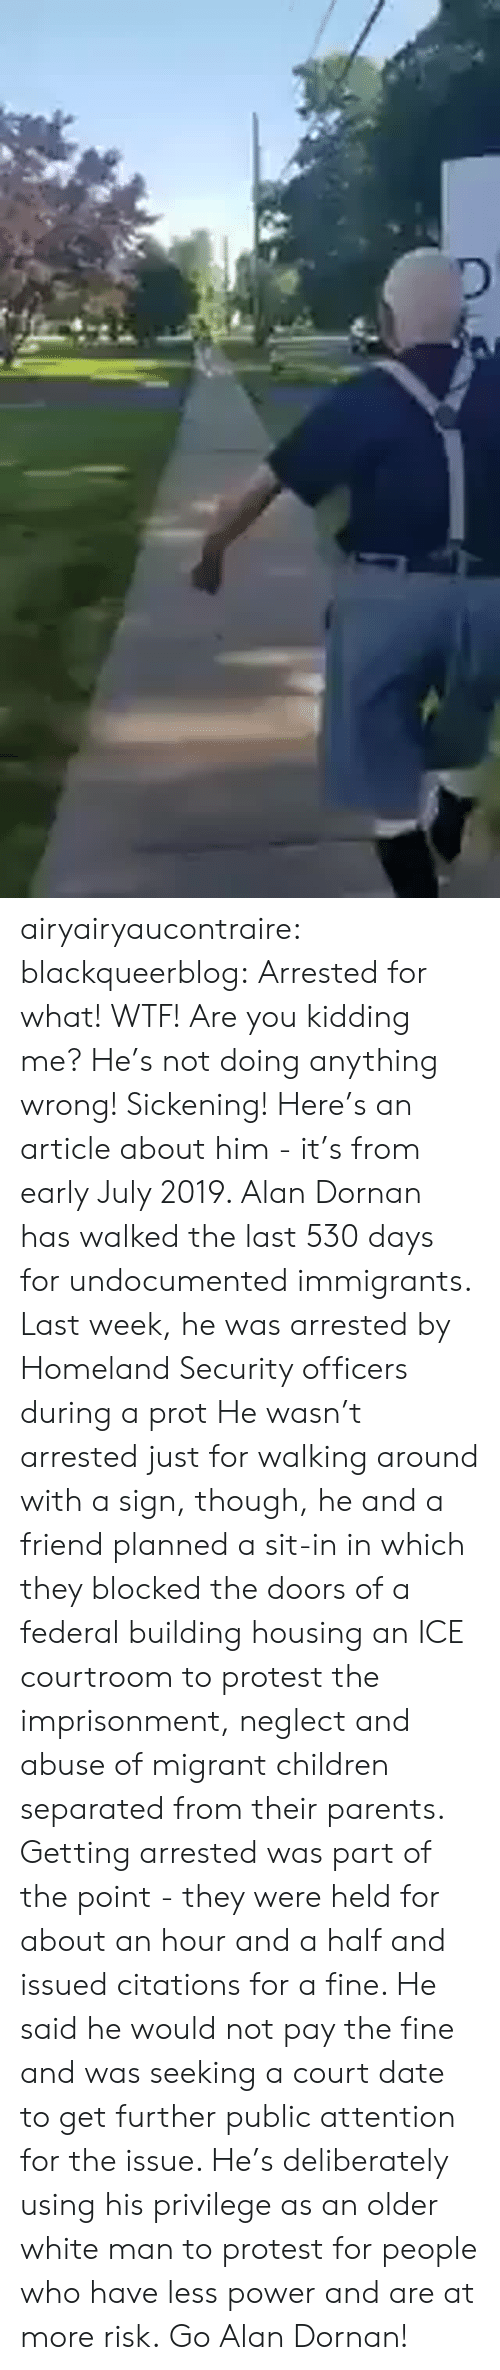 at-peace: airyairyaucontraire:  blackqueerblog:  Arrested for what! WTF! Are you kidding me? He's not doing anything wrong! Sickening!  Here's an article about him - it's from early July 2019.  Alan Dornan has walked the last 530 days for undocumented immigrants. Last week, he was arrested by Homeland Security officers during a prot He wasn't arrested just for walking around with a sign, though, he and a friend planned a sit-in in which they blocked the doors of a federal building housing an ICE courtroom to protest the imprisonment, neglect and abuse of migrant children separated from their parents.  Getting arrested was part of the point - they were held for about an hour and a half and issued citations for a fine. He said he would not pay the fine and was seeking a court date to get further public attention for the issue.  He's deliberately using his privilege as an older white man to protest for people who have less power and are at more risk. Go Alan Dornan!